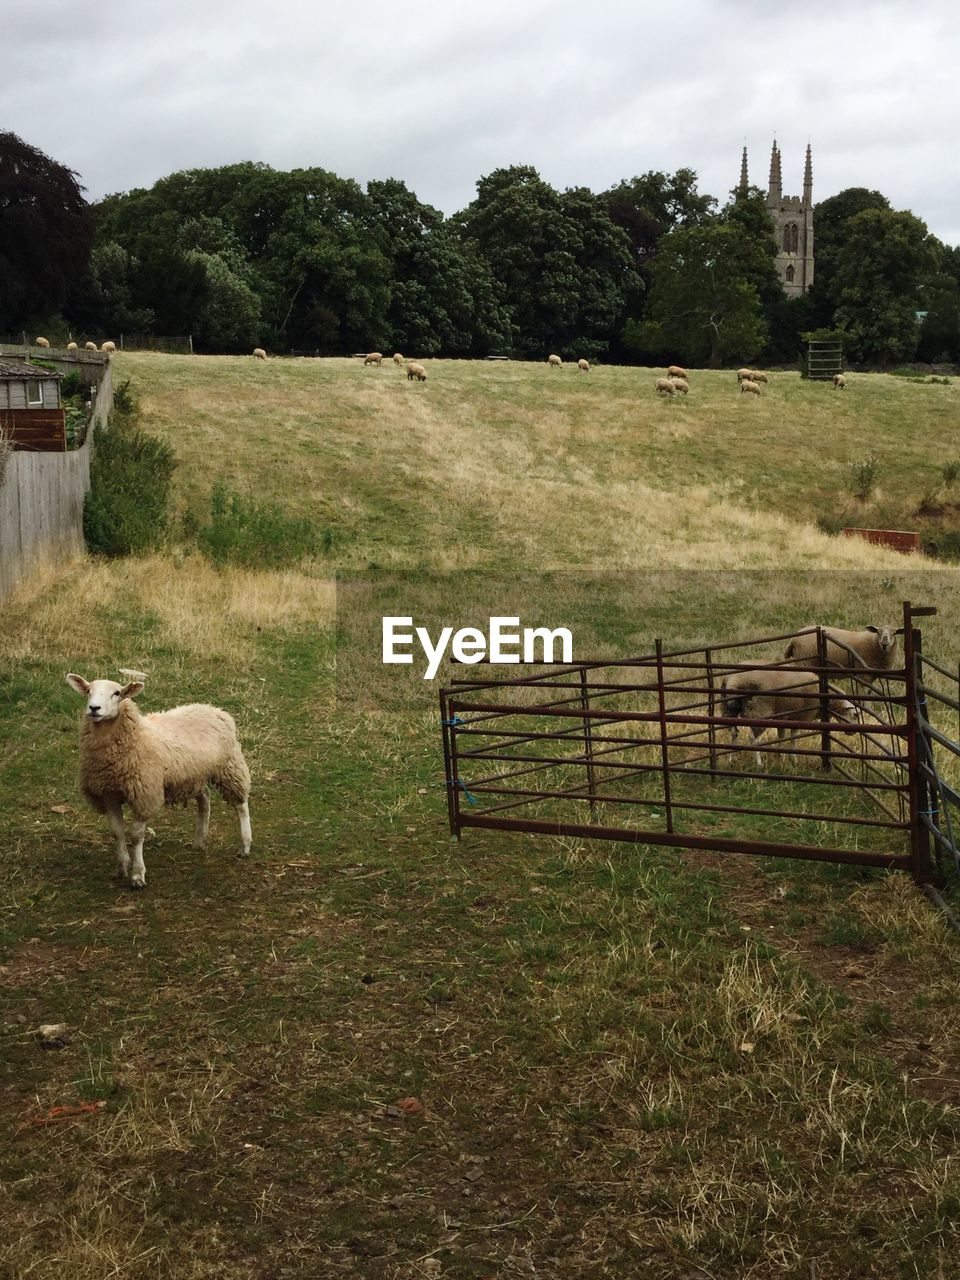 plant, mammal, animal, domestic animals, animal themes, livestock, grass, field, domestic, pets, land, vertebrate, nature, sheep, boundary, barrier, landscape, fence, group of animals, day, no people, outdoors, herbivorous